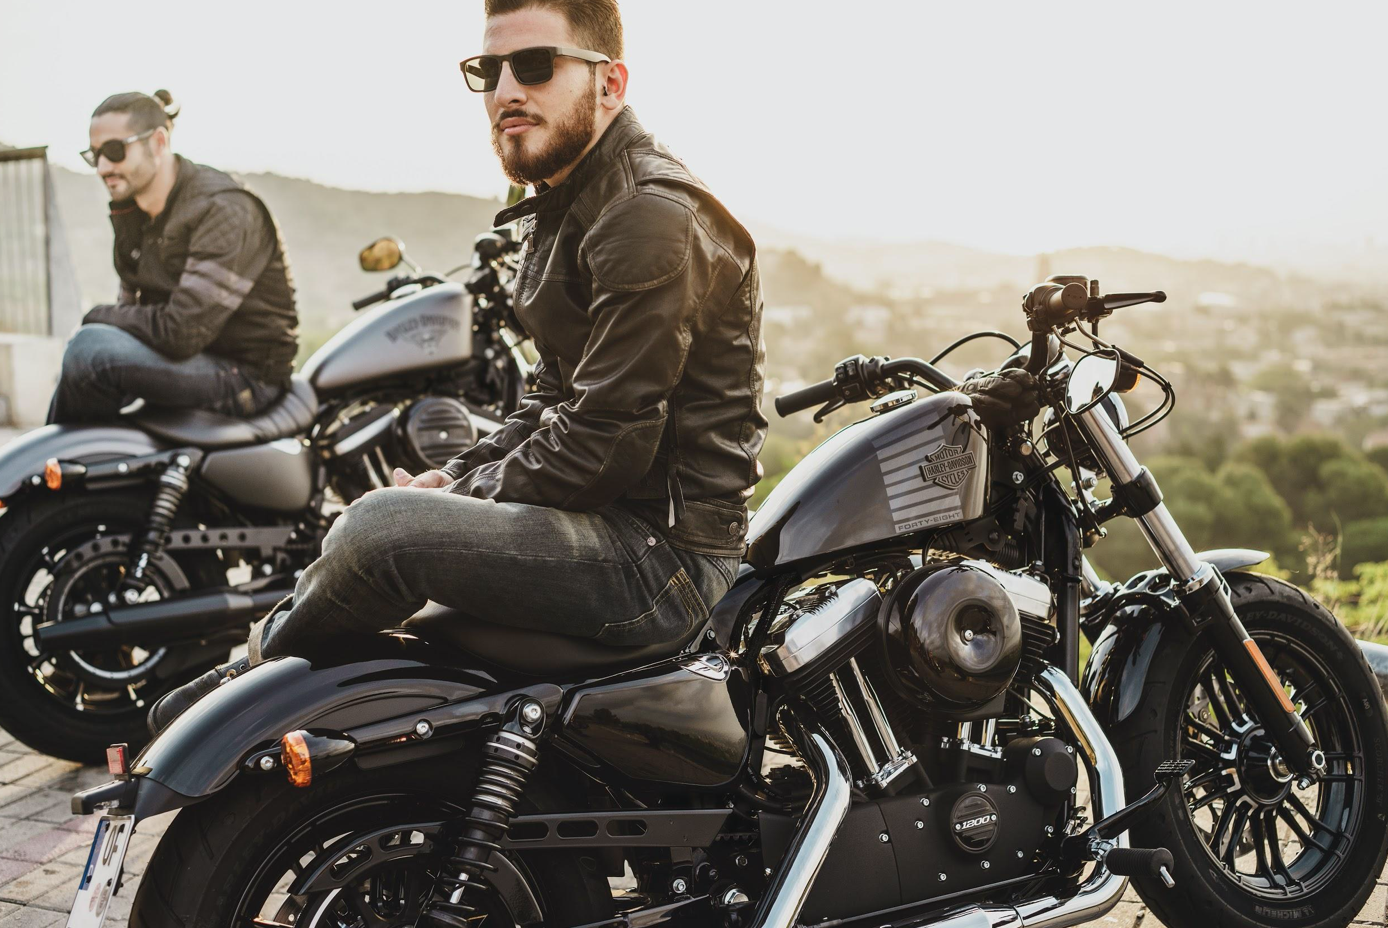 Two men sitting on parked motorcycles; image by Harley-Davidson, via Unsplash.com.